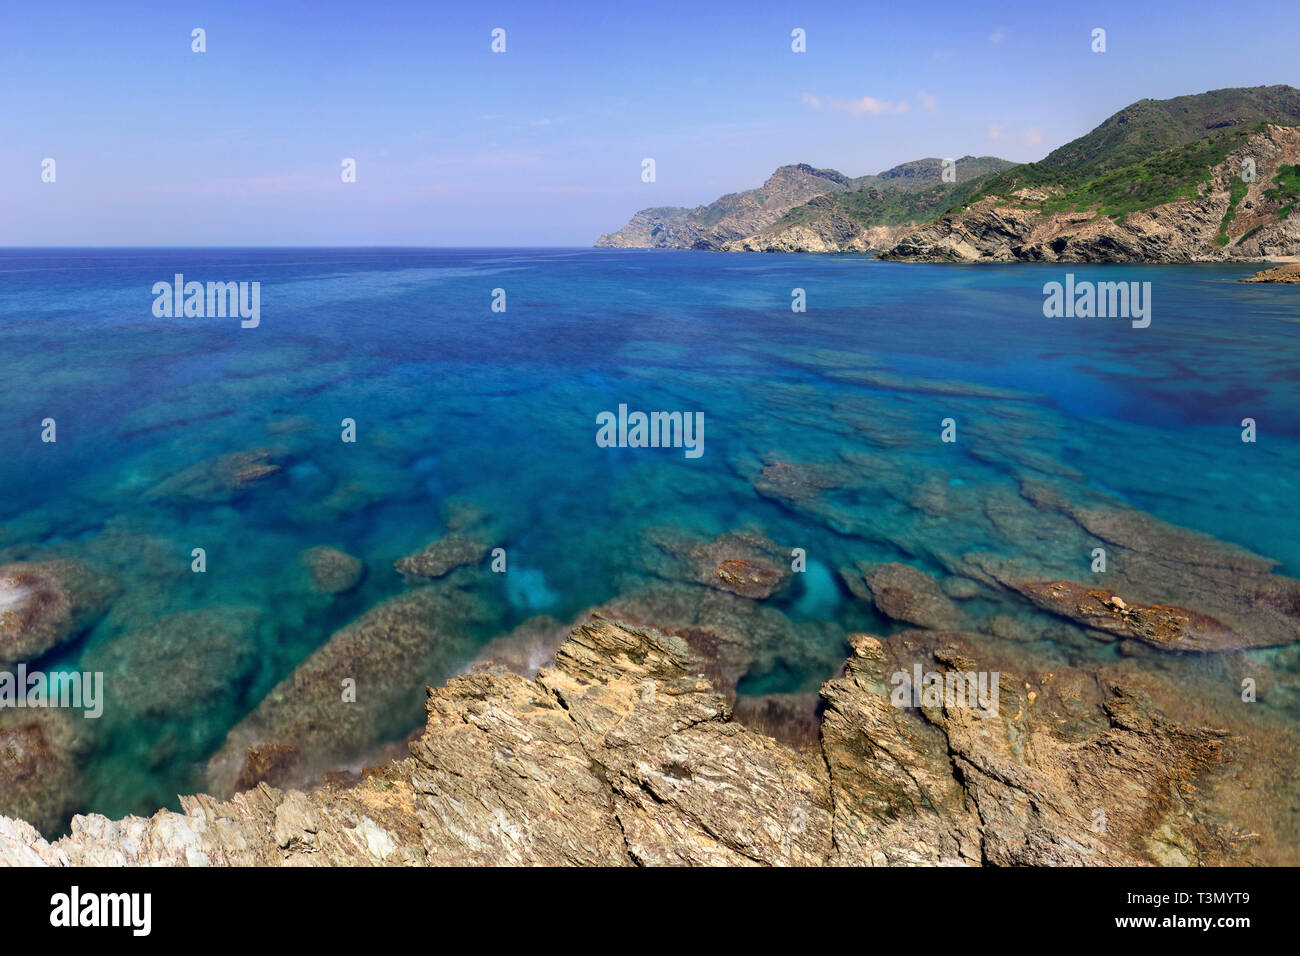 The rocky coast nearby Porticciolo, a small hamlet along the western coast of Sardinia, not far from Capo Caccia and Alghero - Stock Image